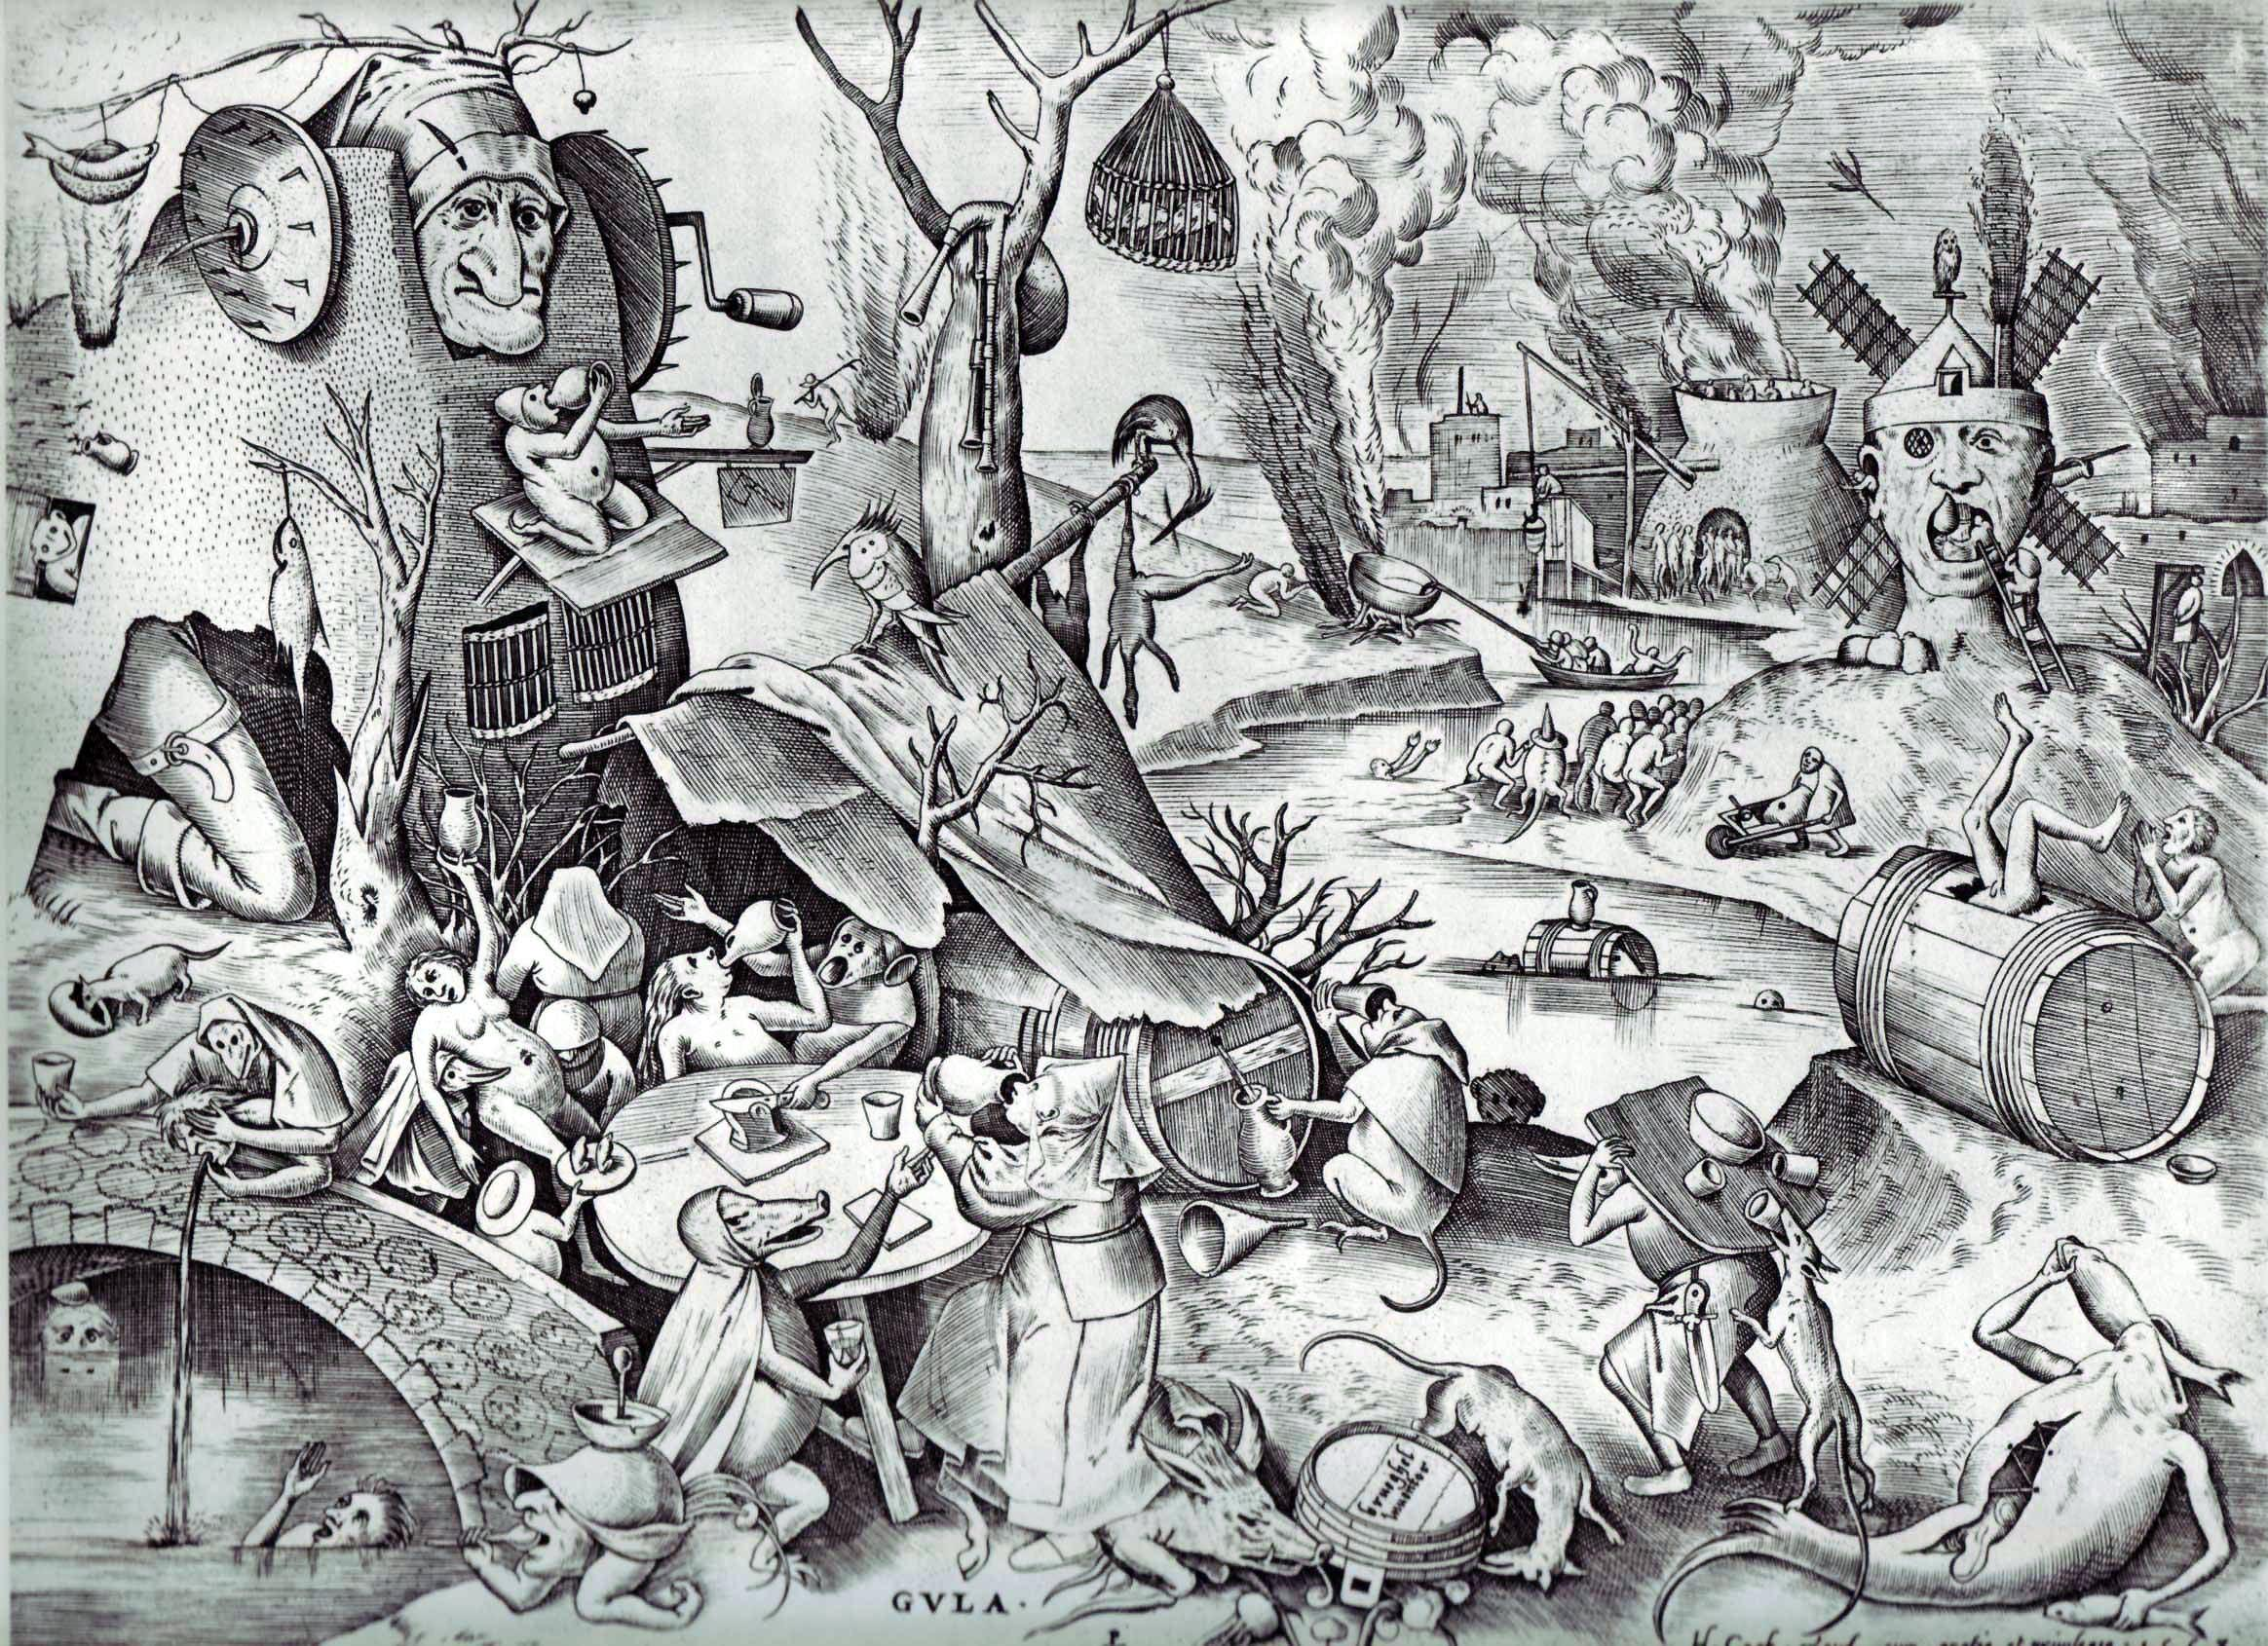 Pieter_Bruegel_the_Elder-_The_Seven_Deadly_Sins_or_the_Seven_Vices_-_Gluttony